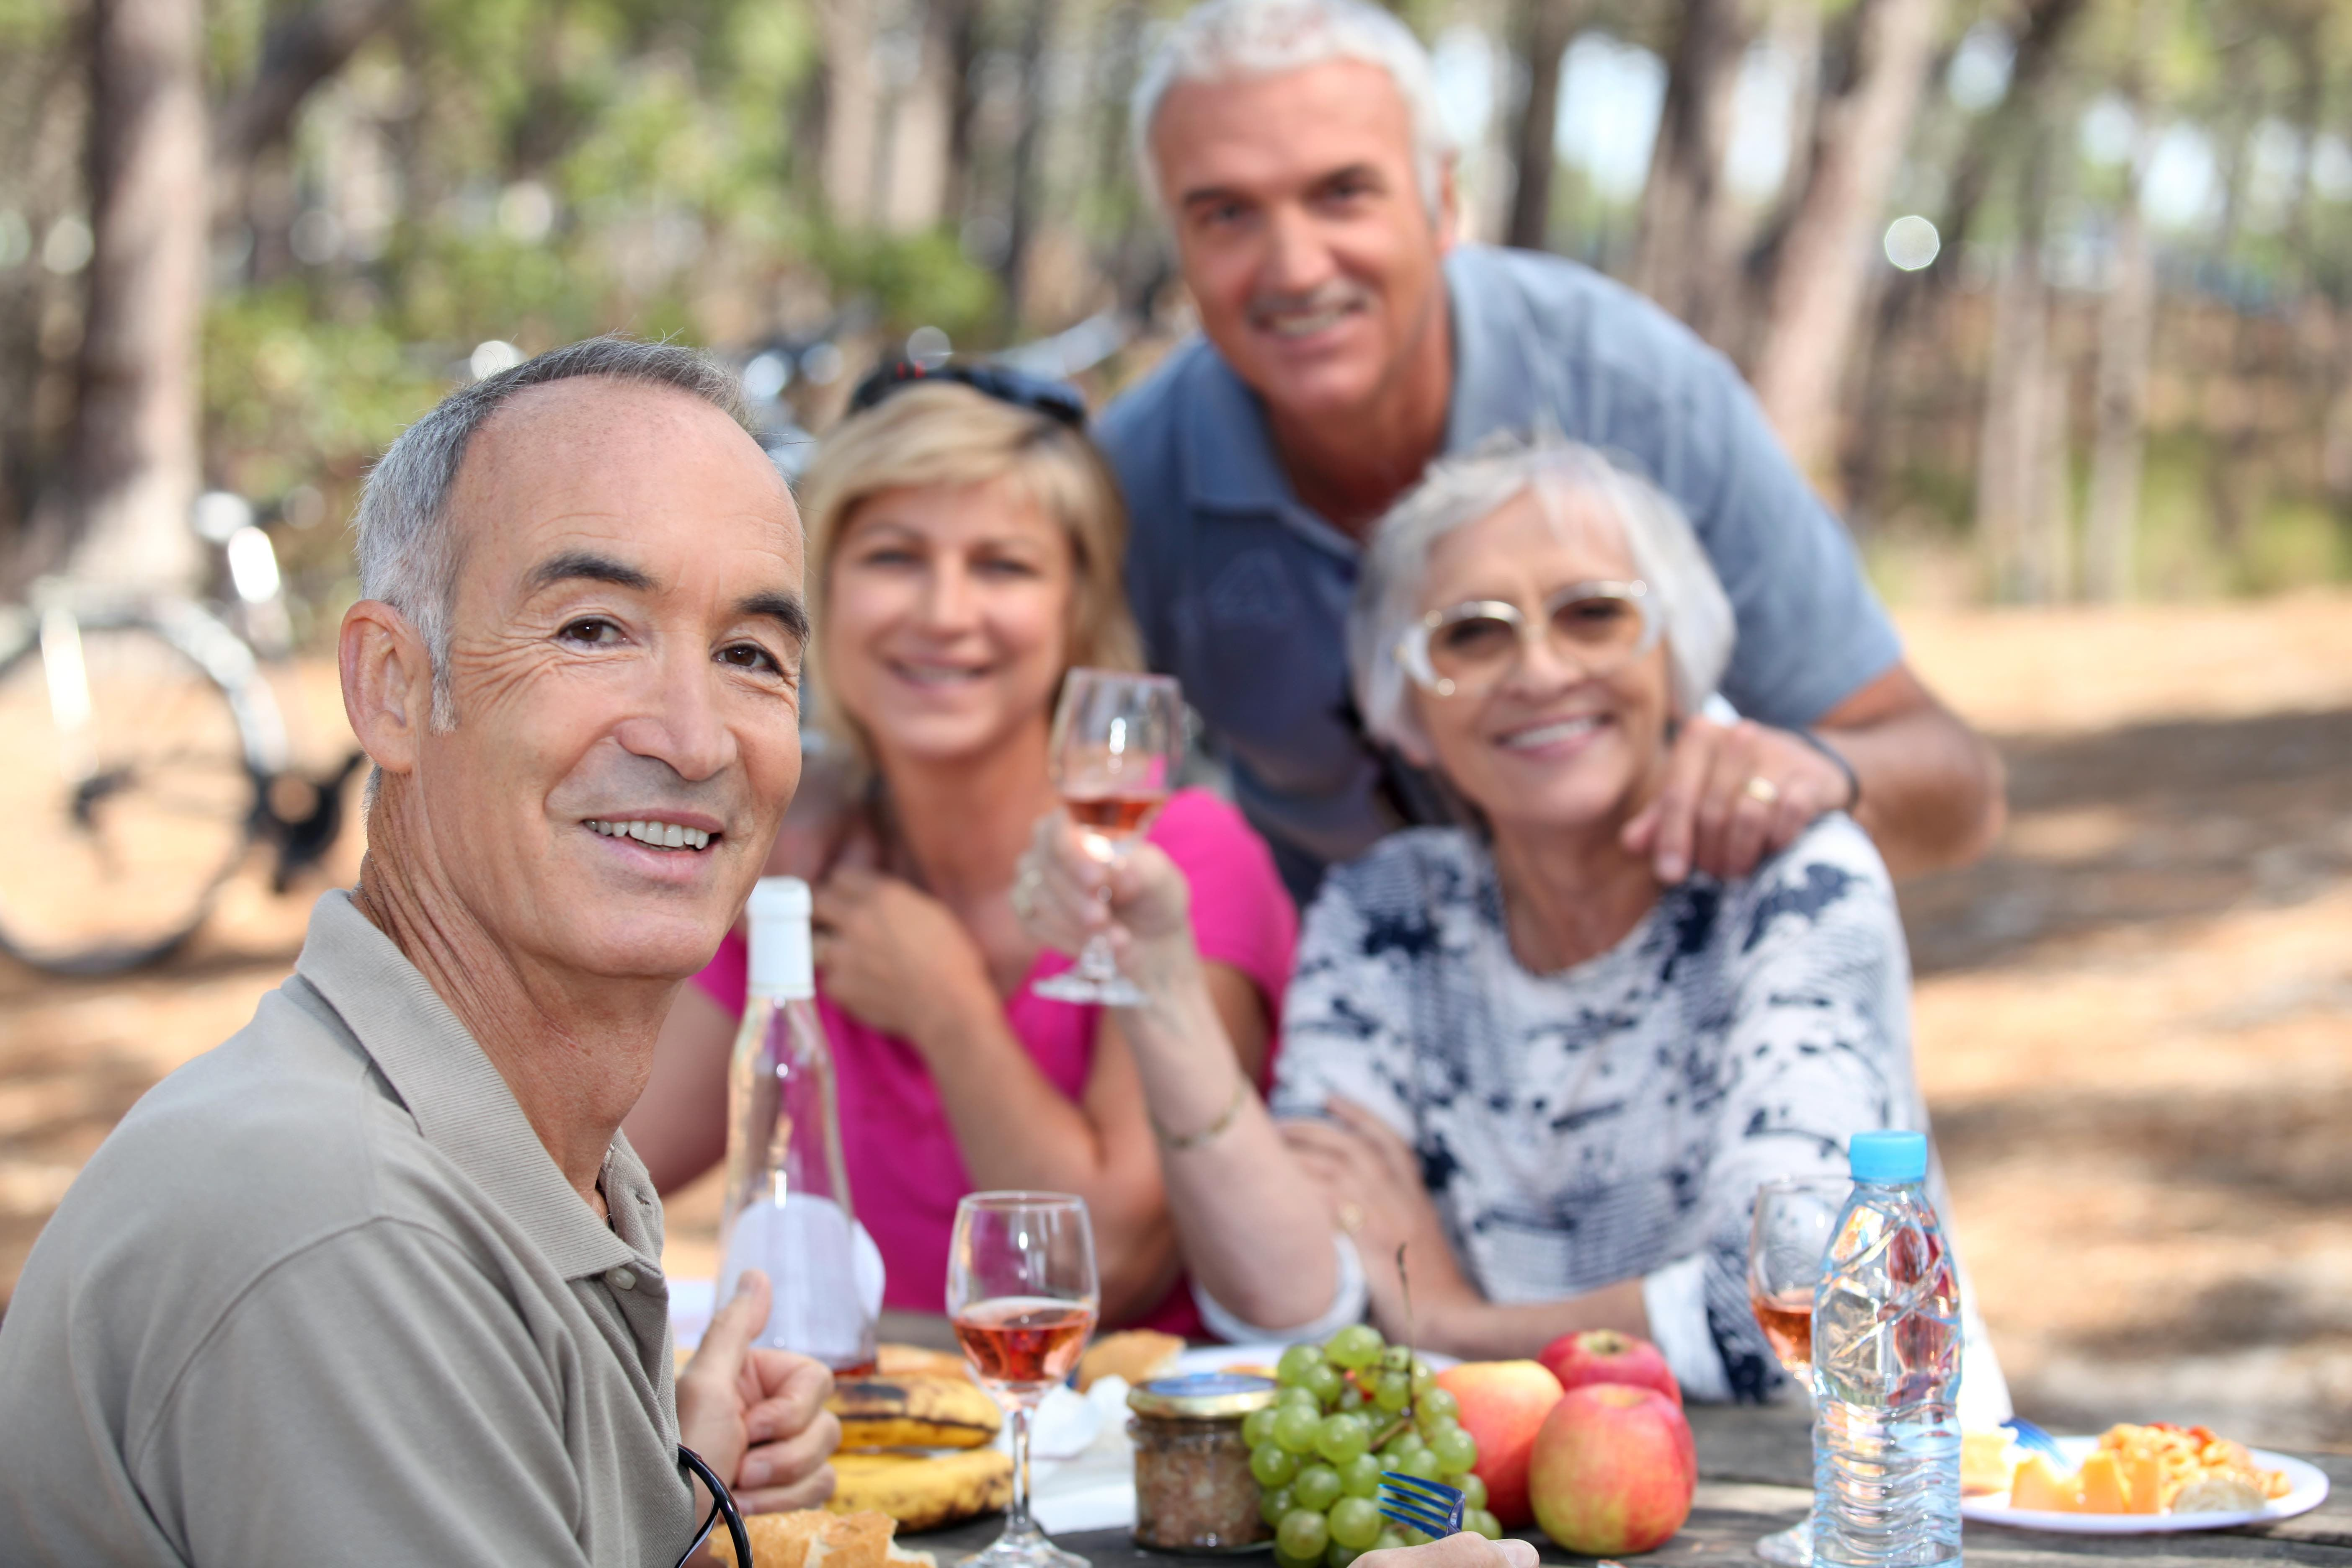 If You Can Follow These Tips, You Can Ensure Your Golden Years Will Be Happy, Healthy & Safe